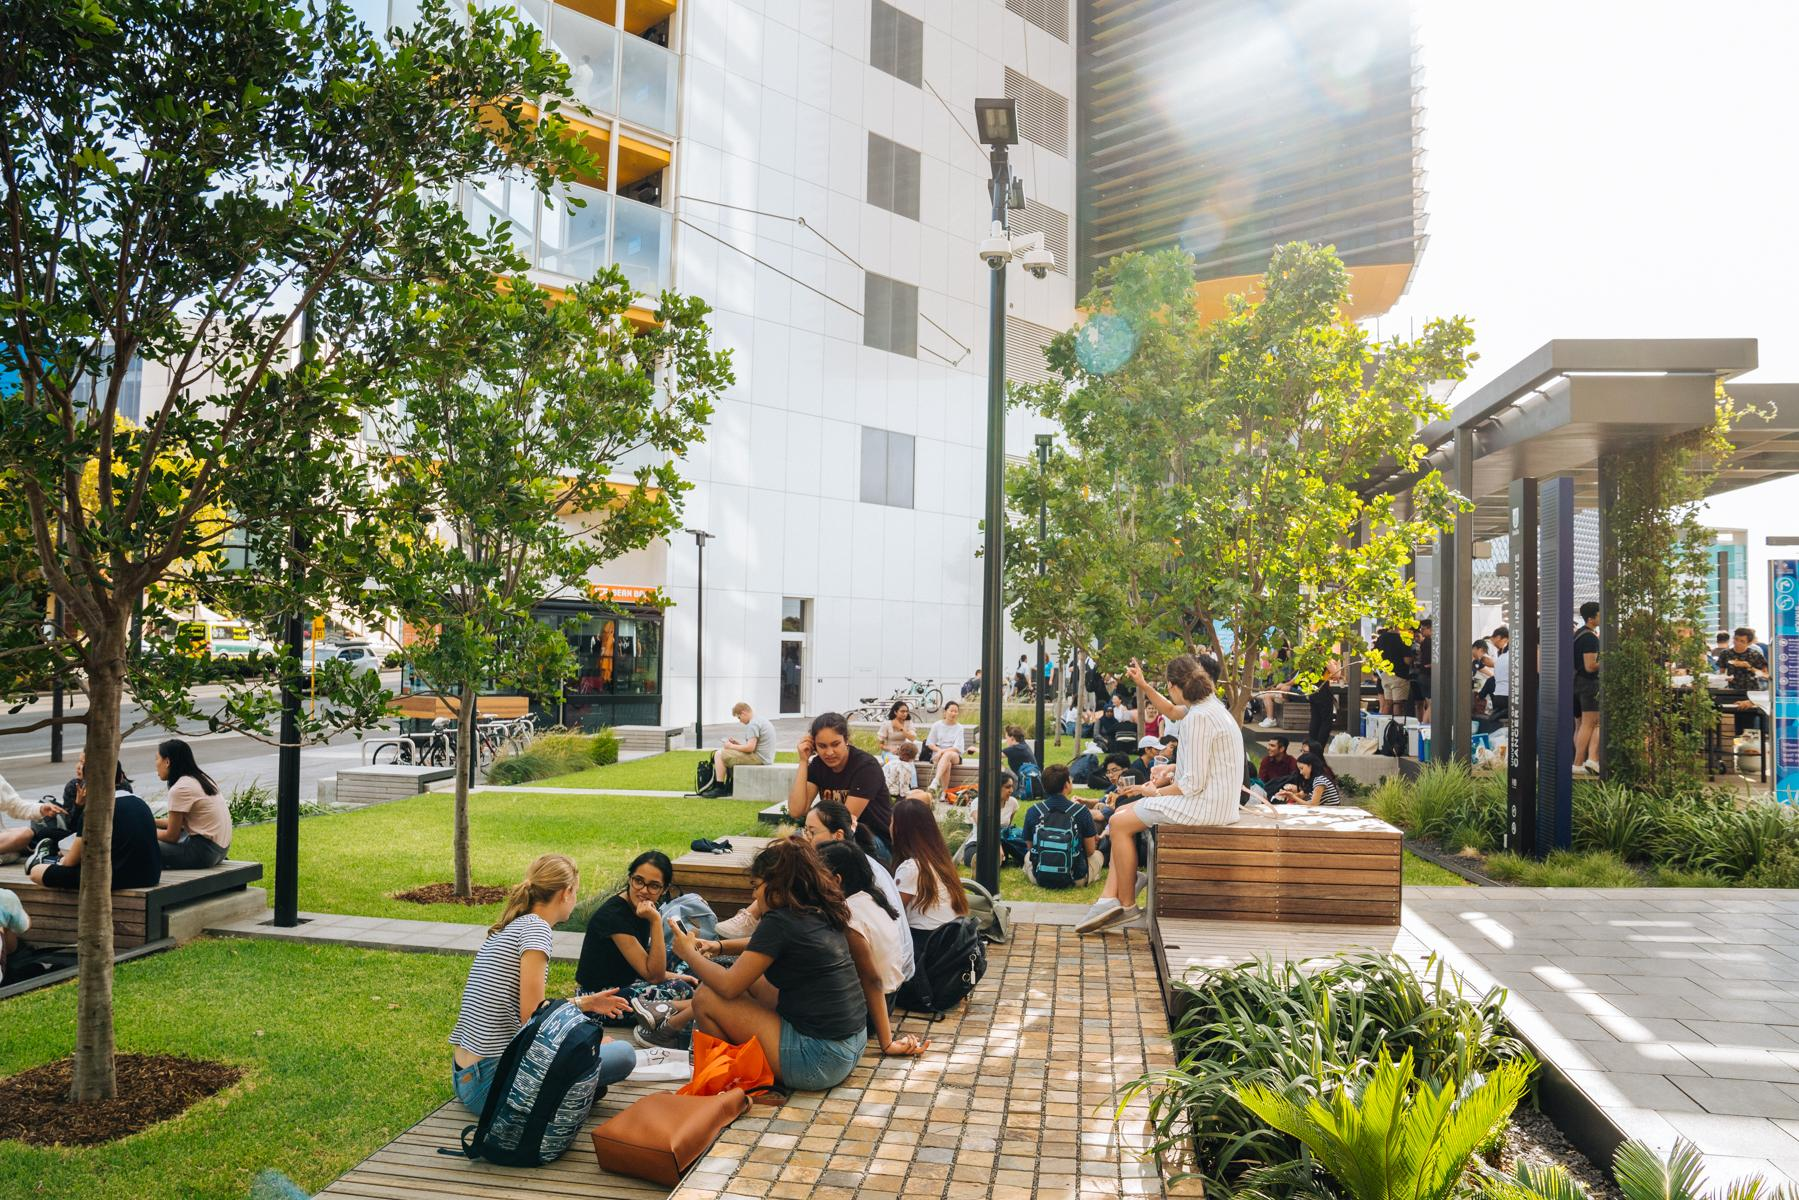 Students sitting and chatting in the Urban Park, outside the AHMS building